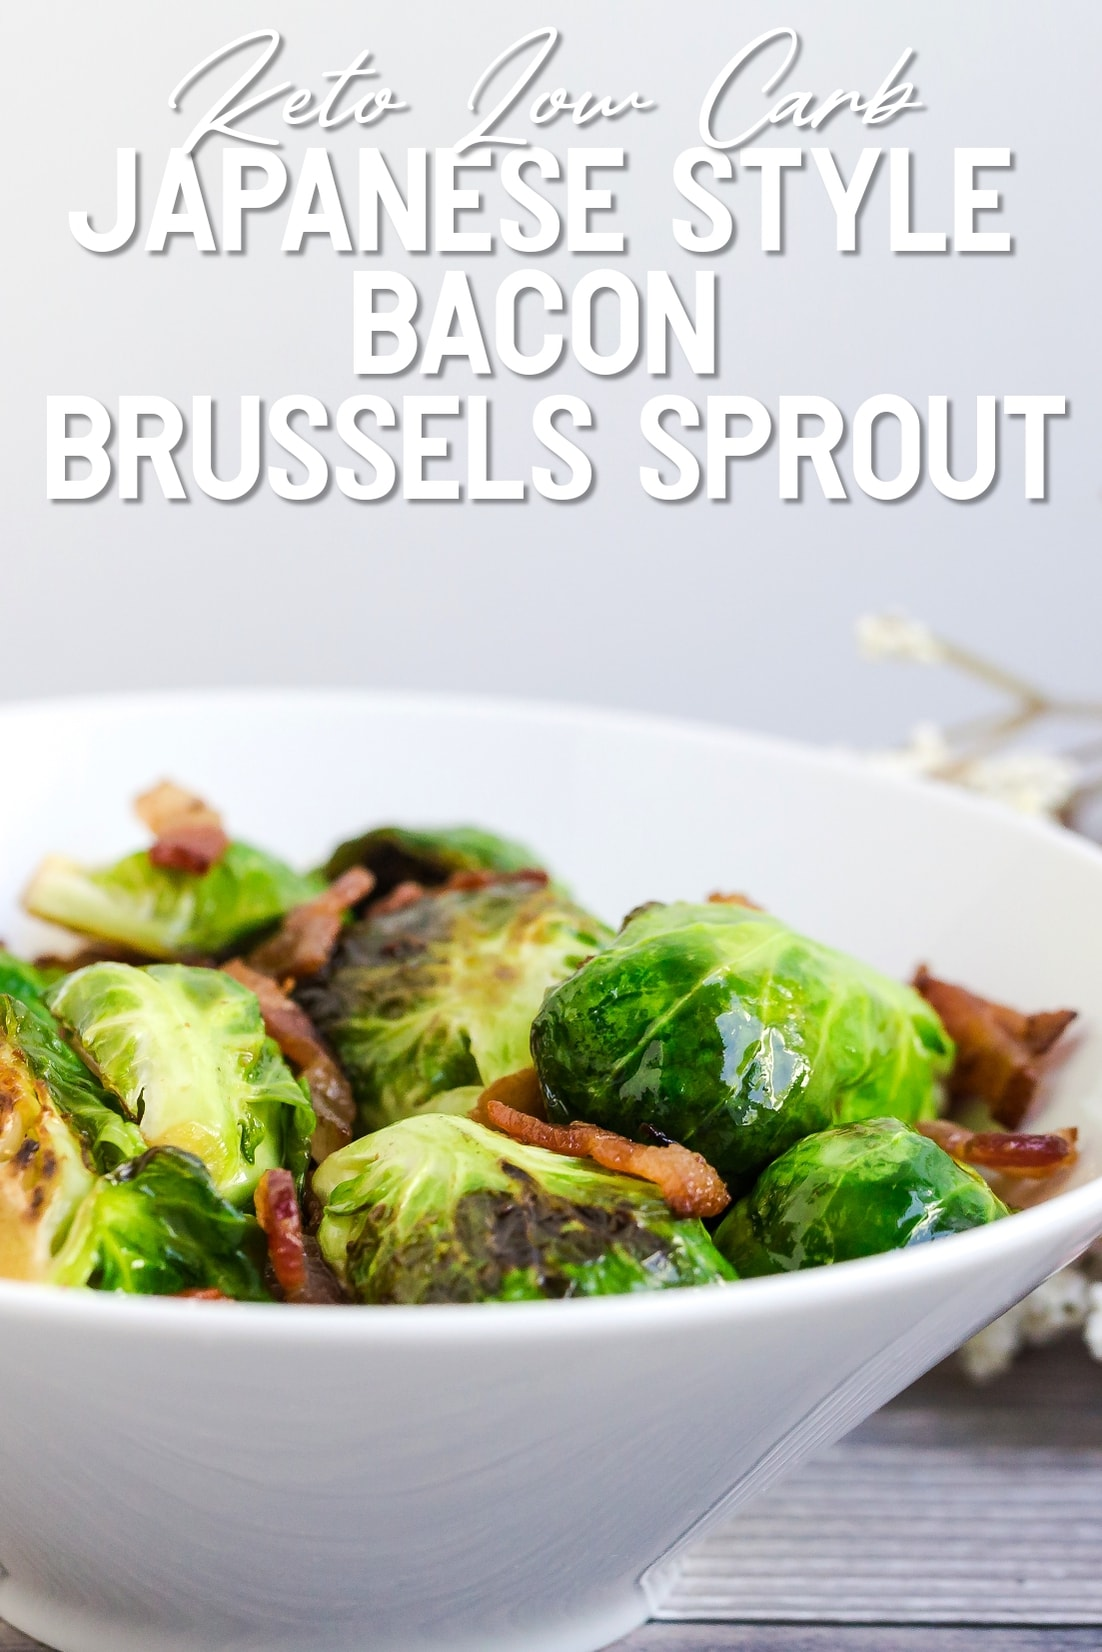 Keto Low Carb Japanese Style Bacon Brussels Sprout side shot